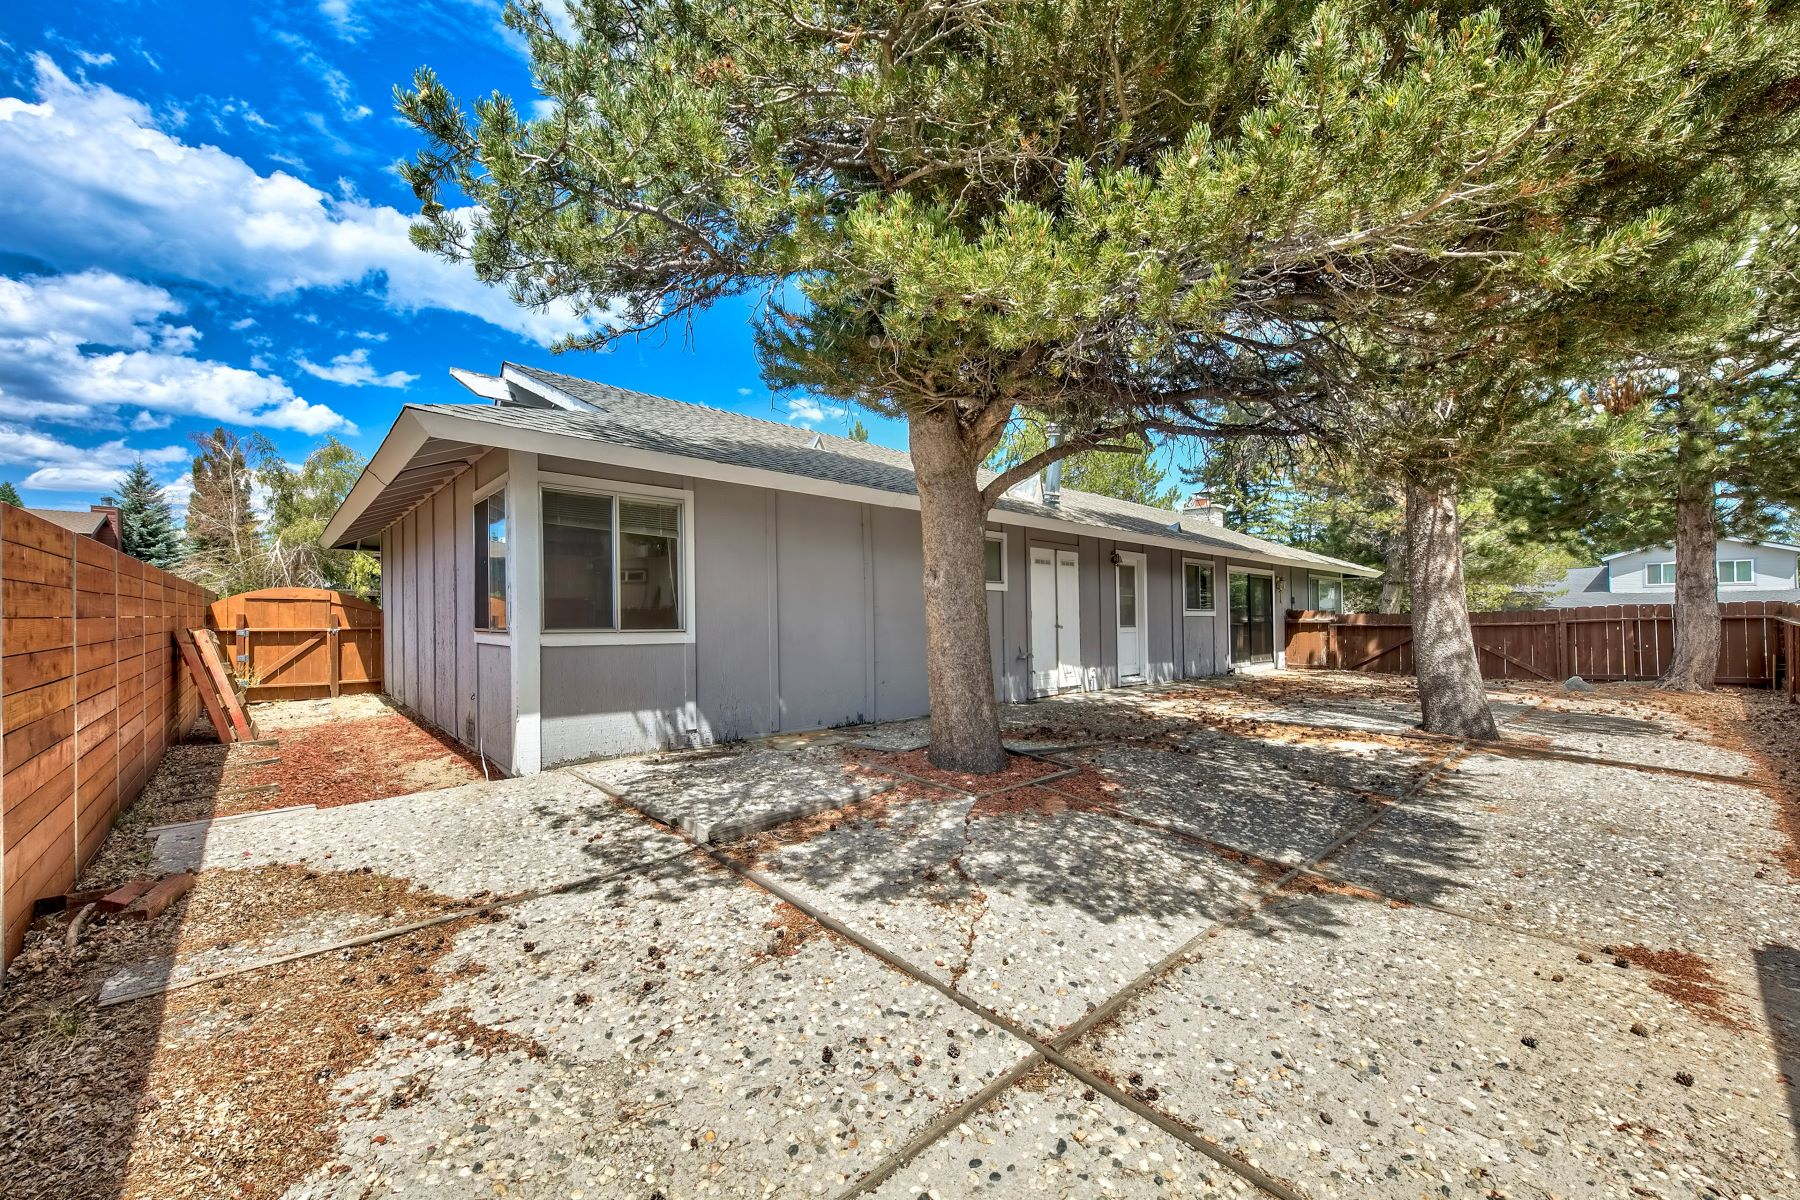 Additional photo for property listing at Tahoe Keys Home with Boat Dock 2254 Balboa Drive South Lake Tahoe, California 96150 United States